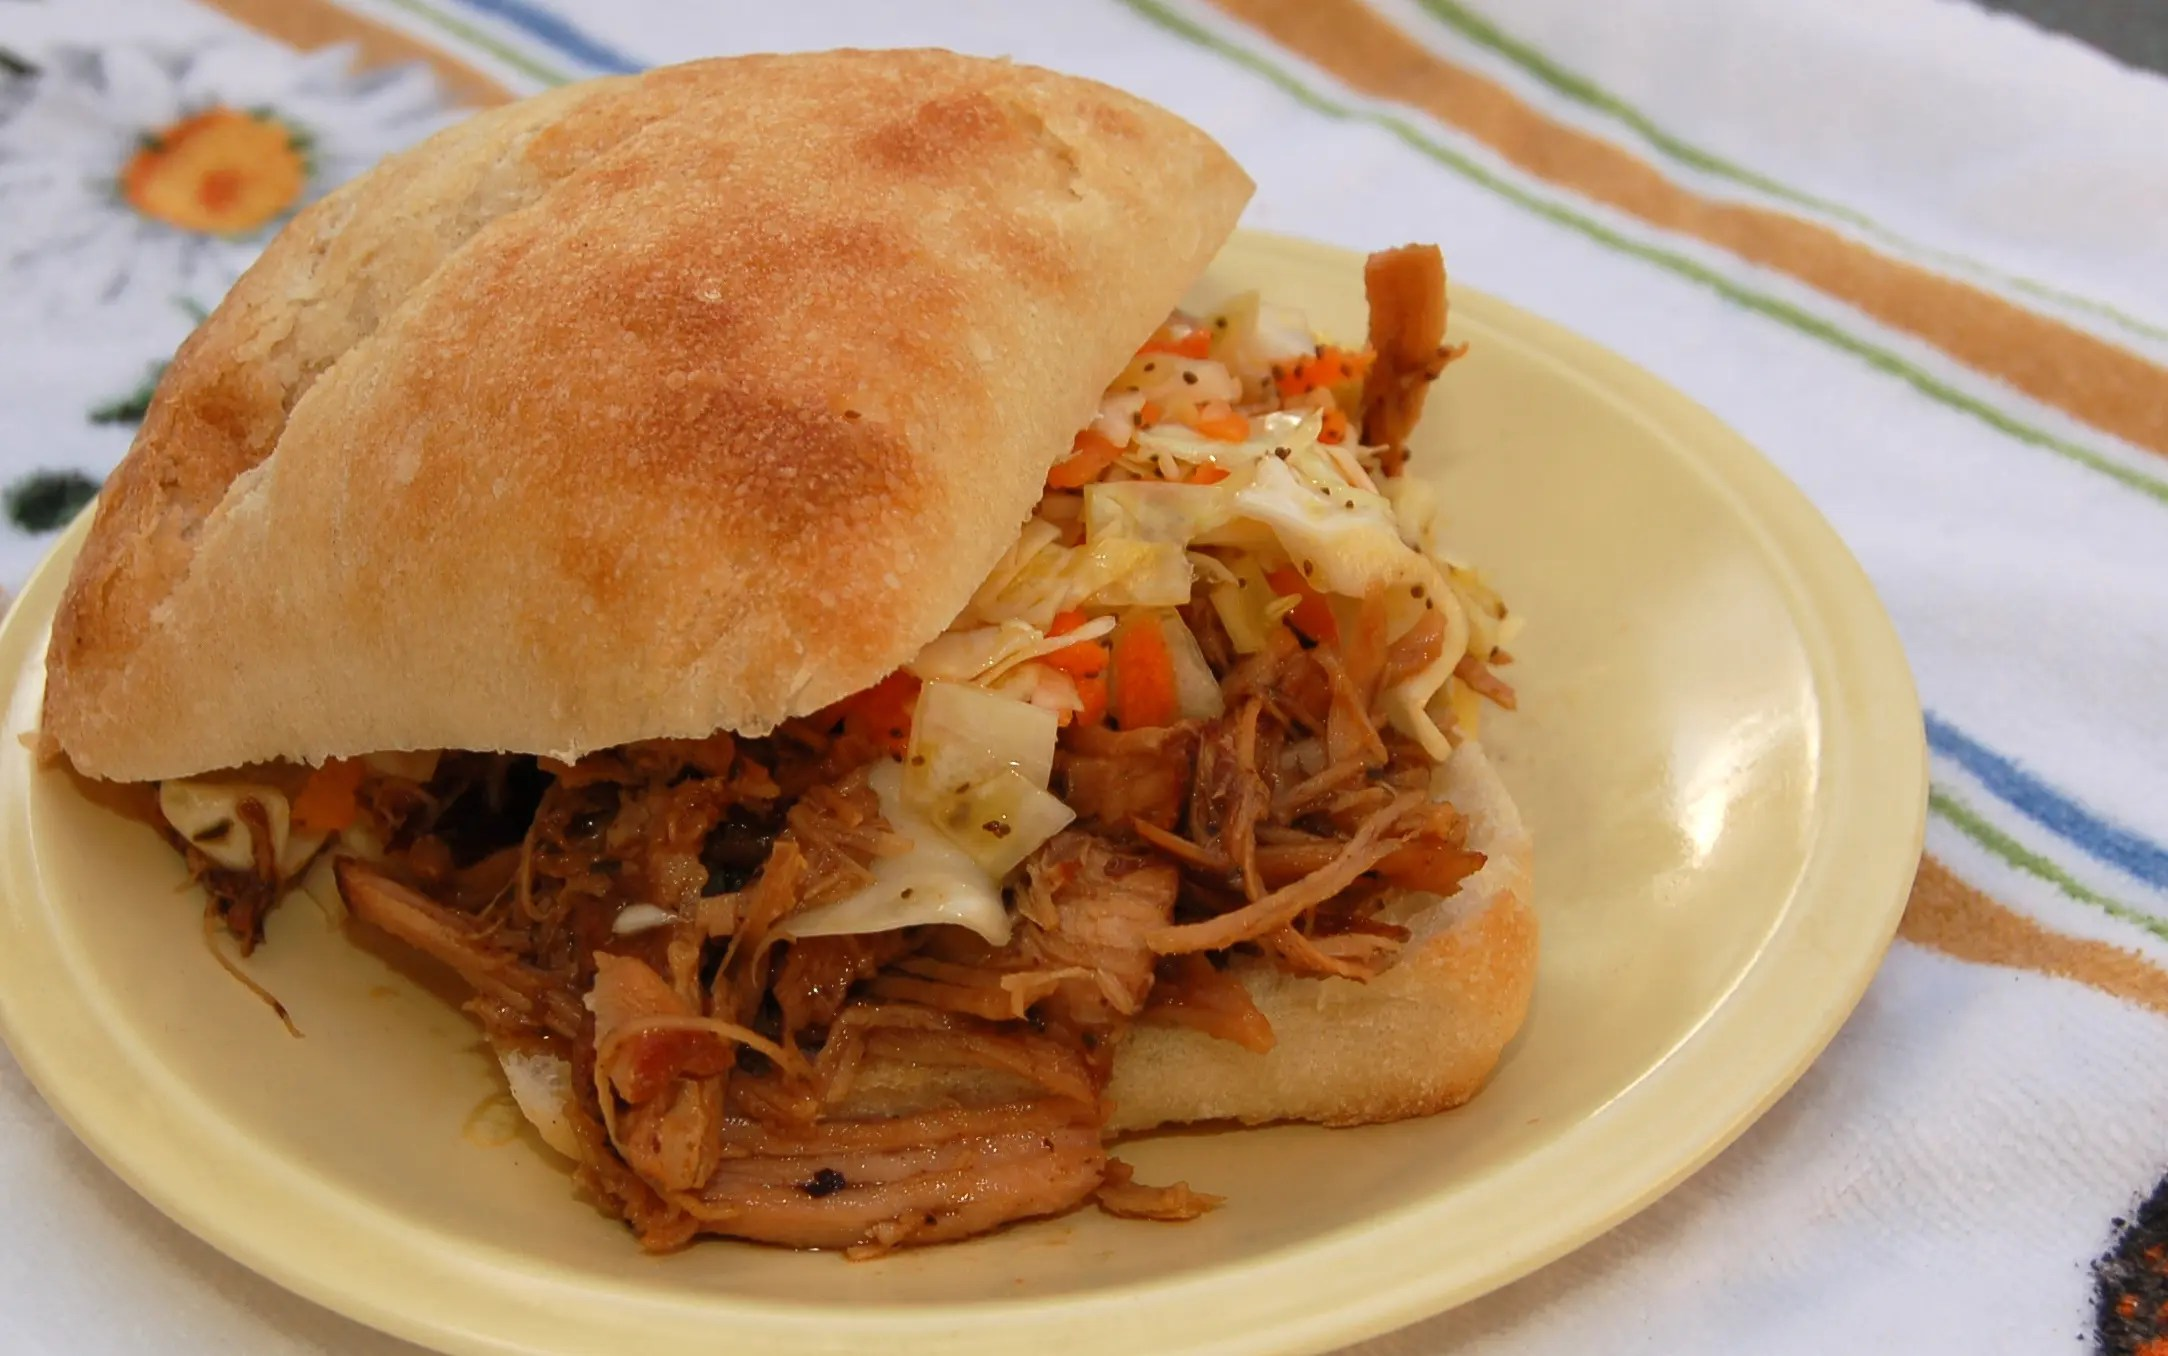 Pulled Pork Sandwiches made in the Crock Pot!